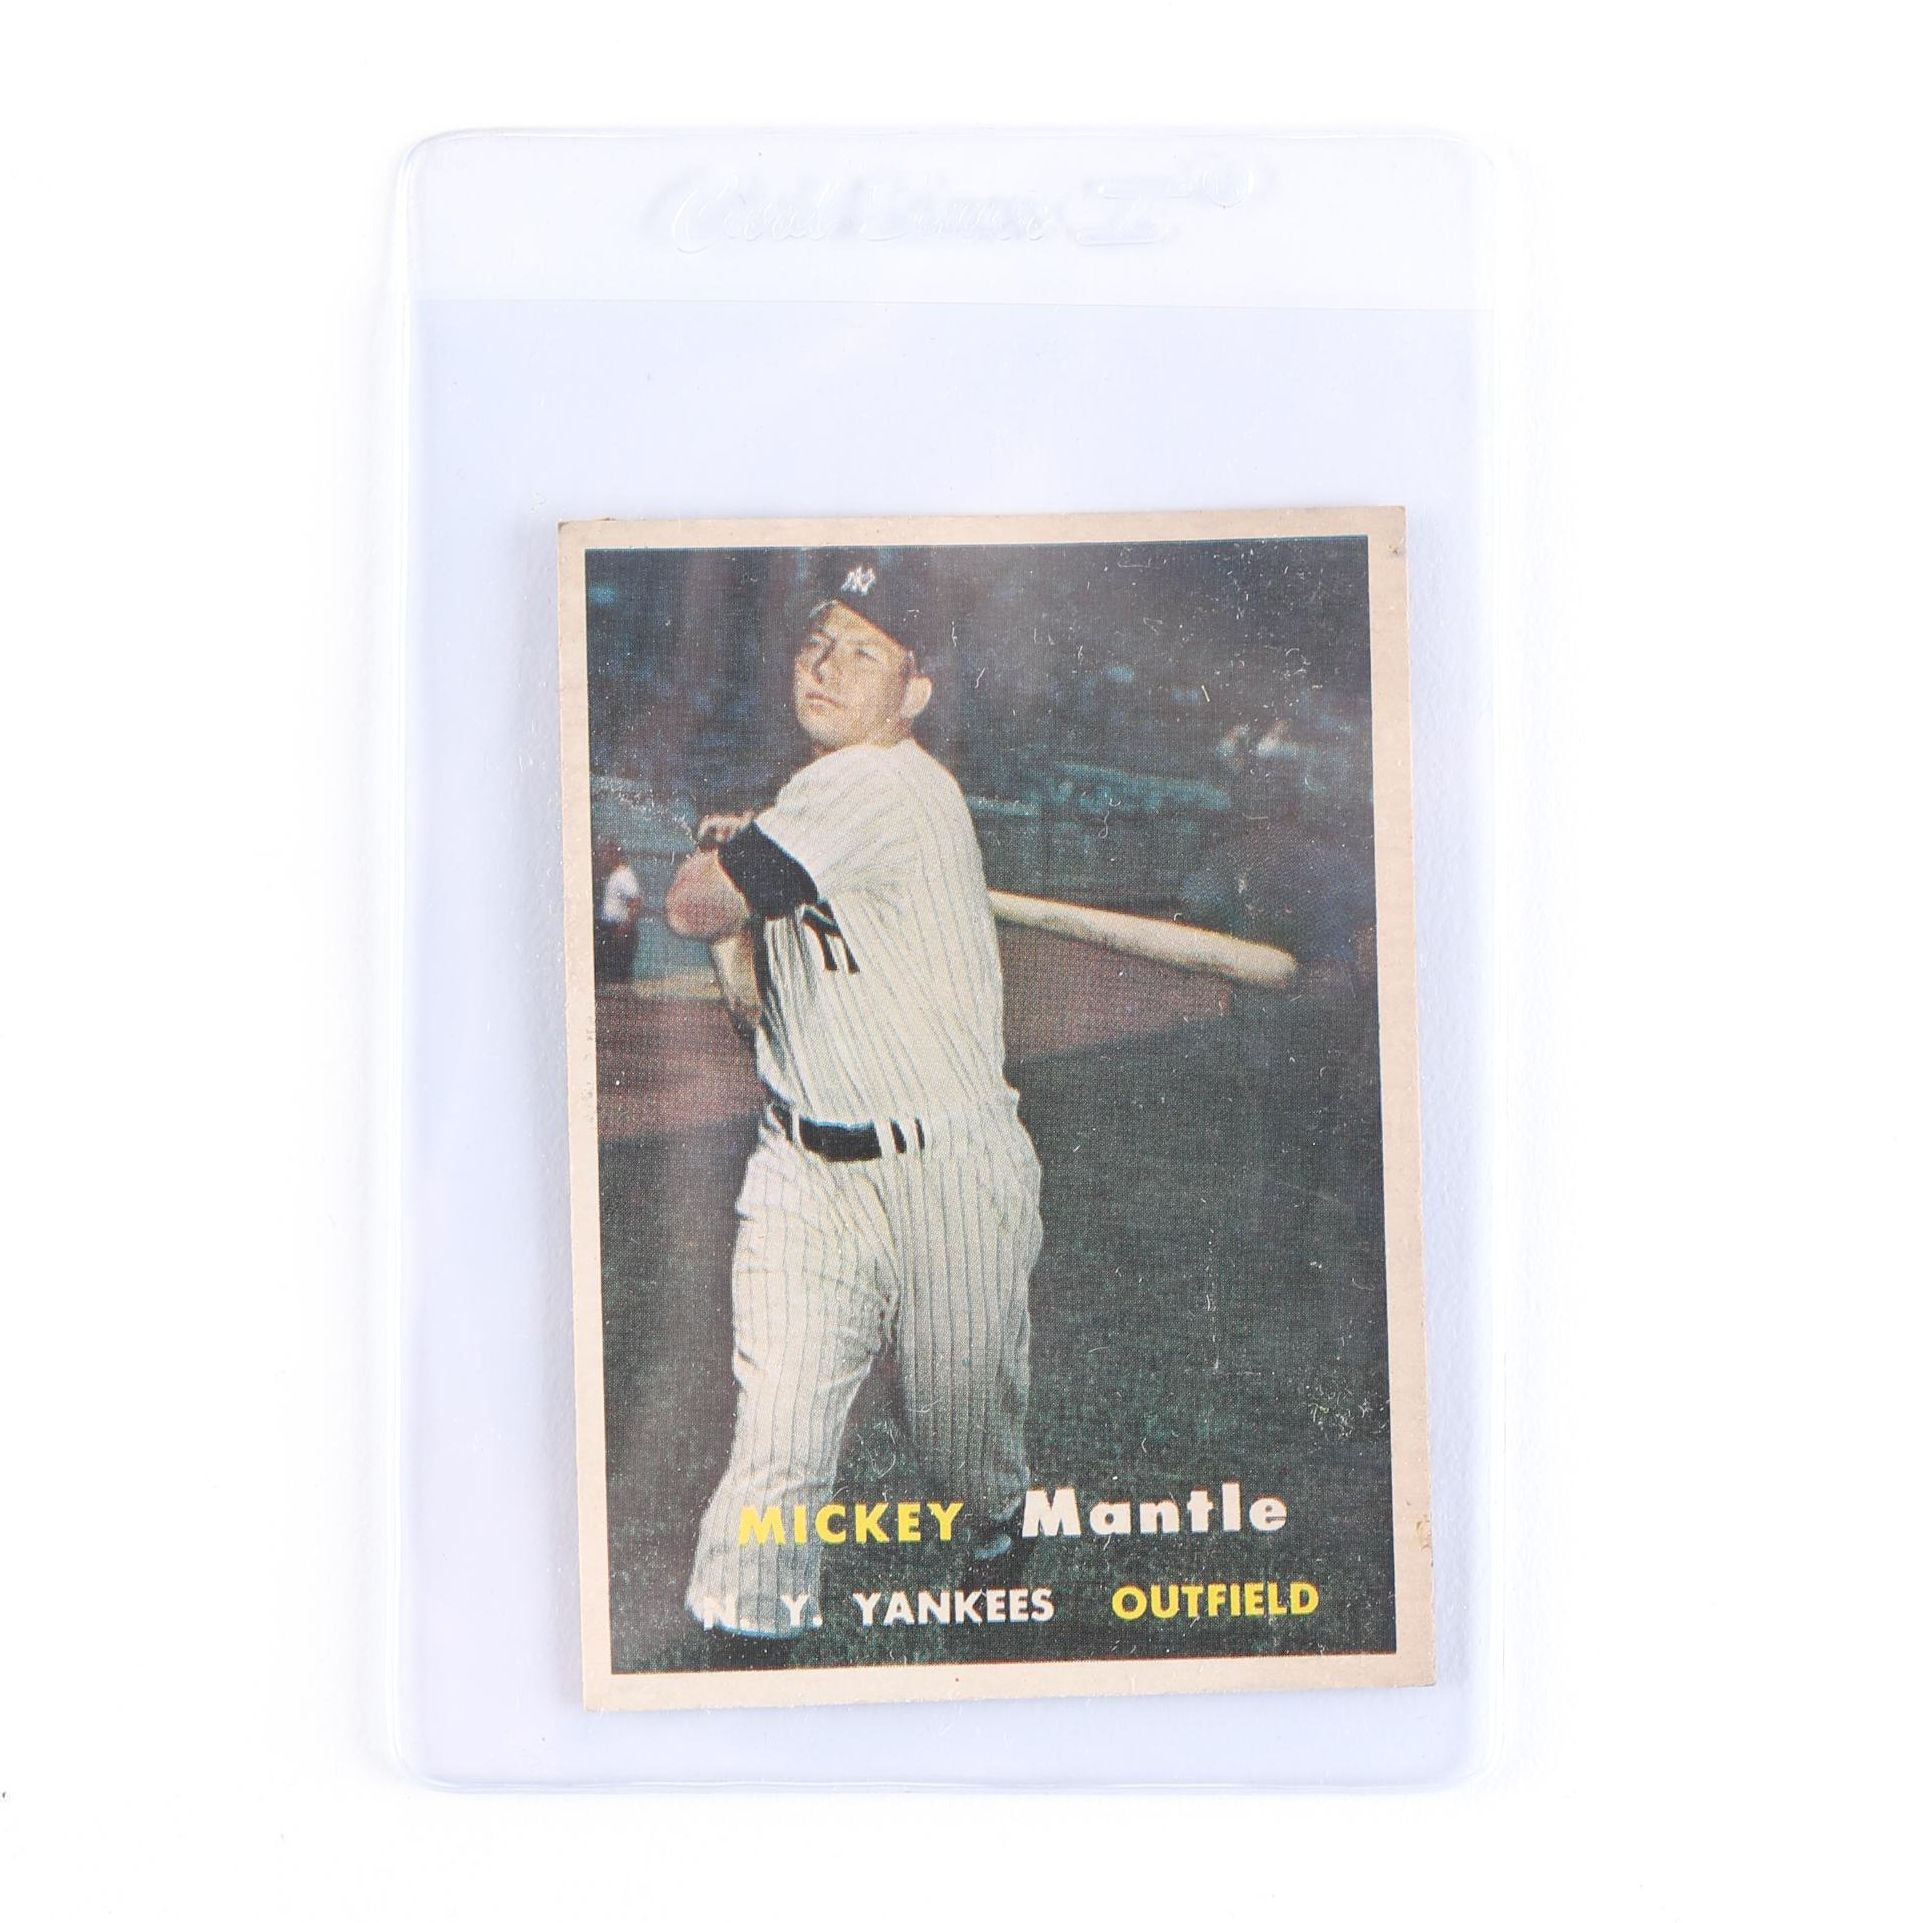 1957 Mickey Mantle Topps Card